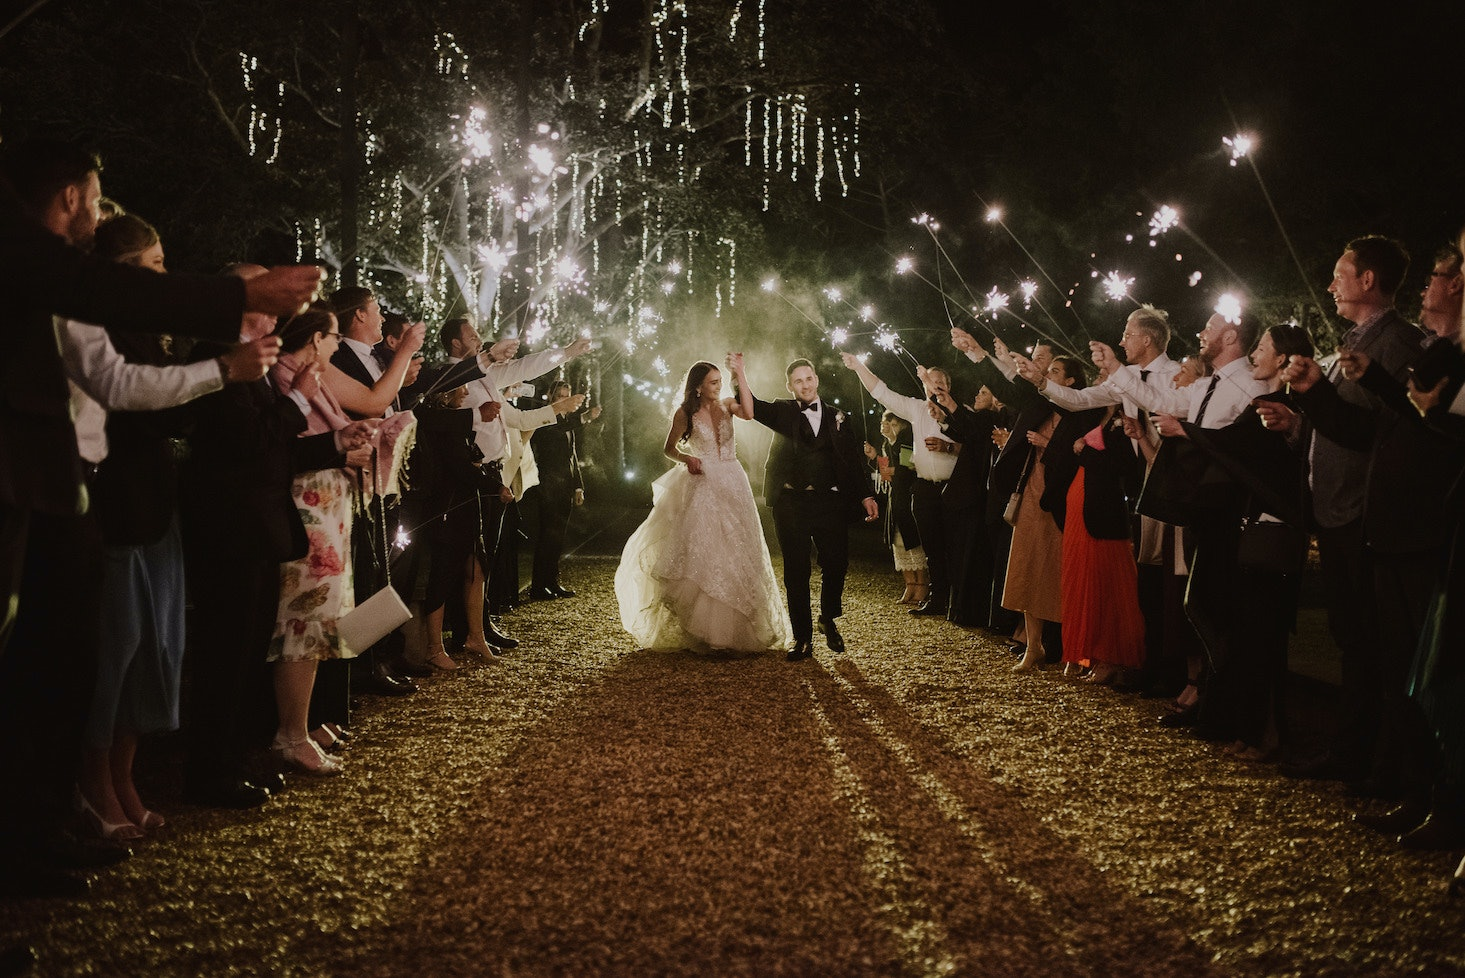 Bride and groom walking down driveway past guests holding sparklers